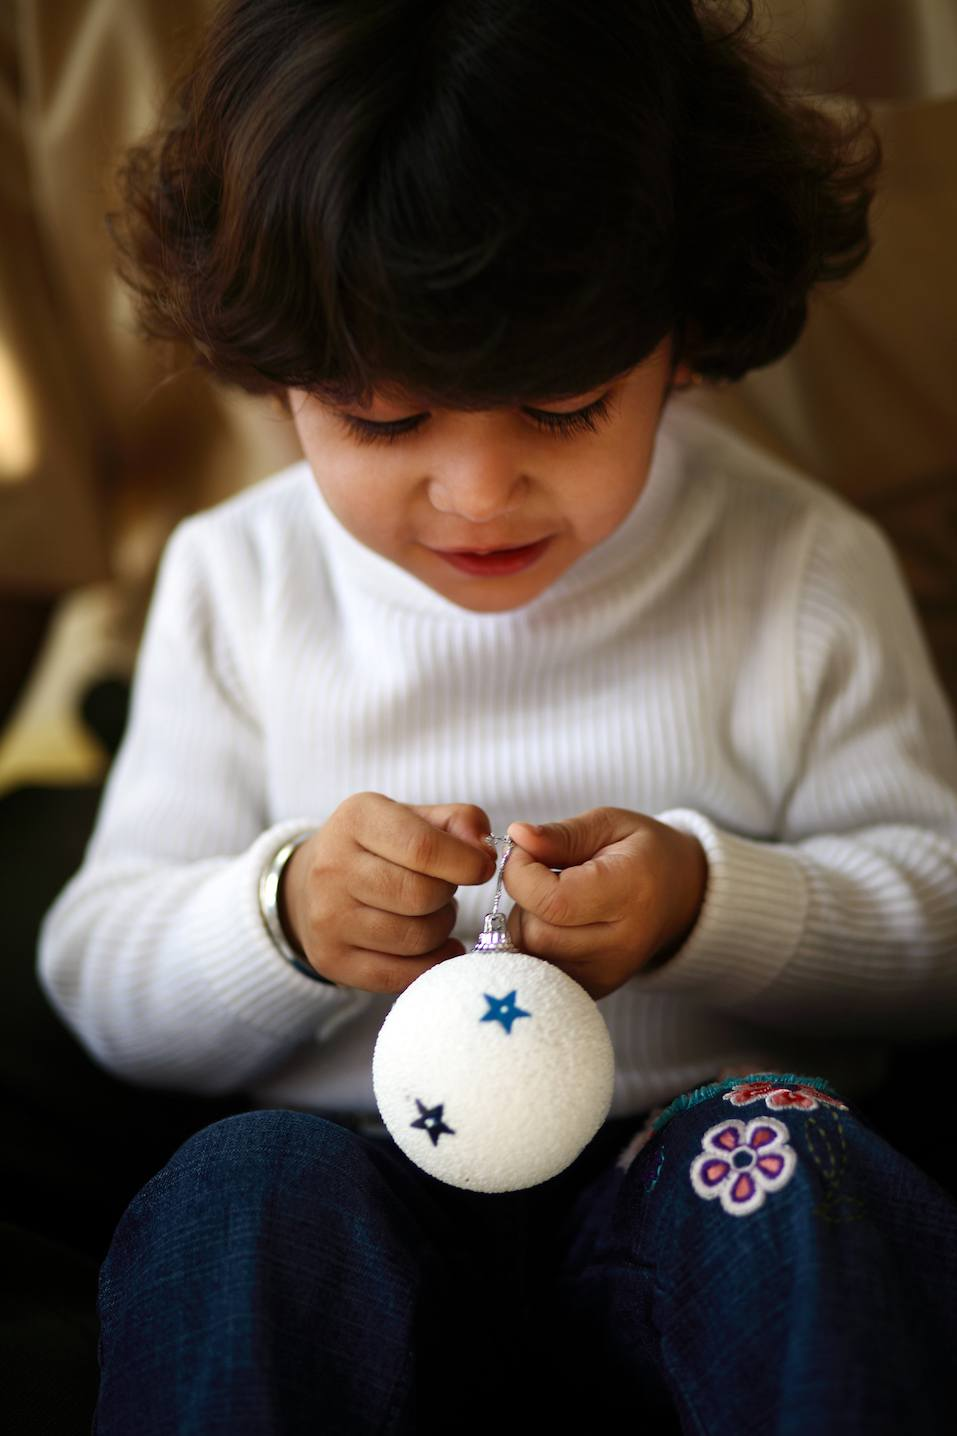 Girl holding a bauble